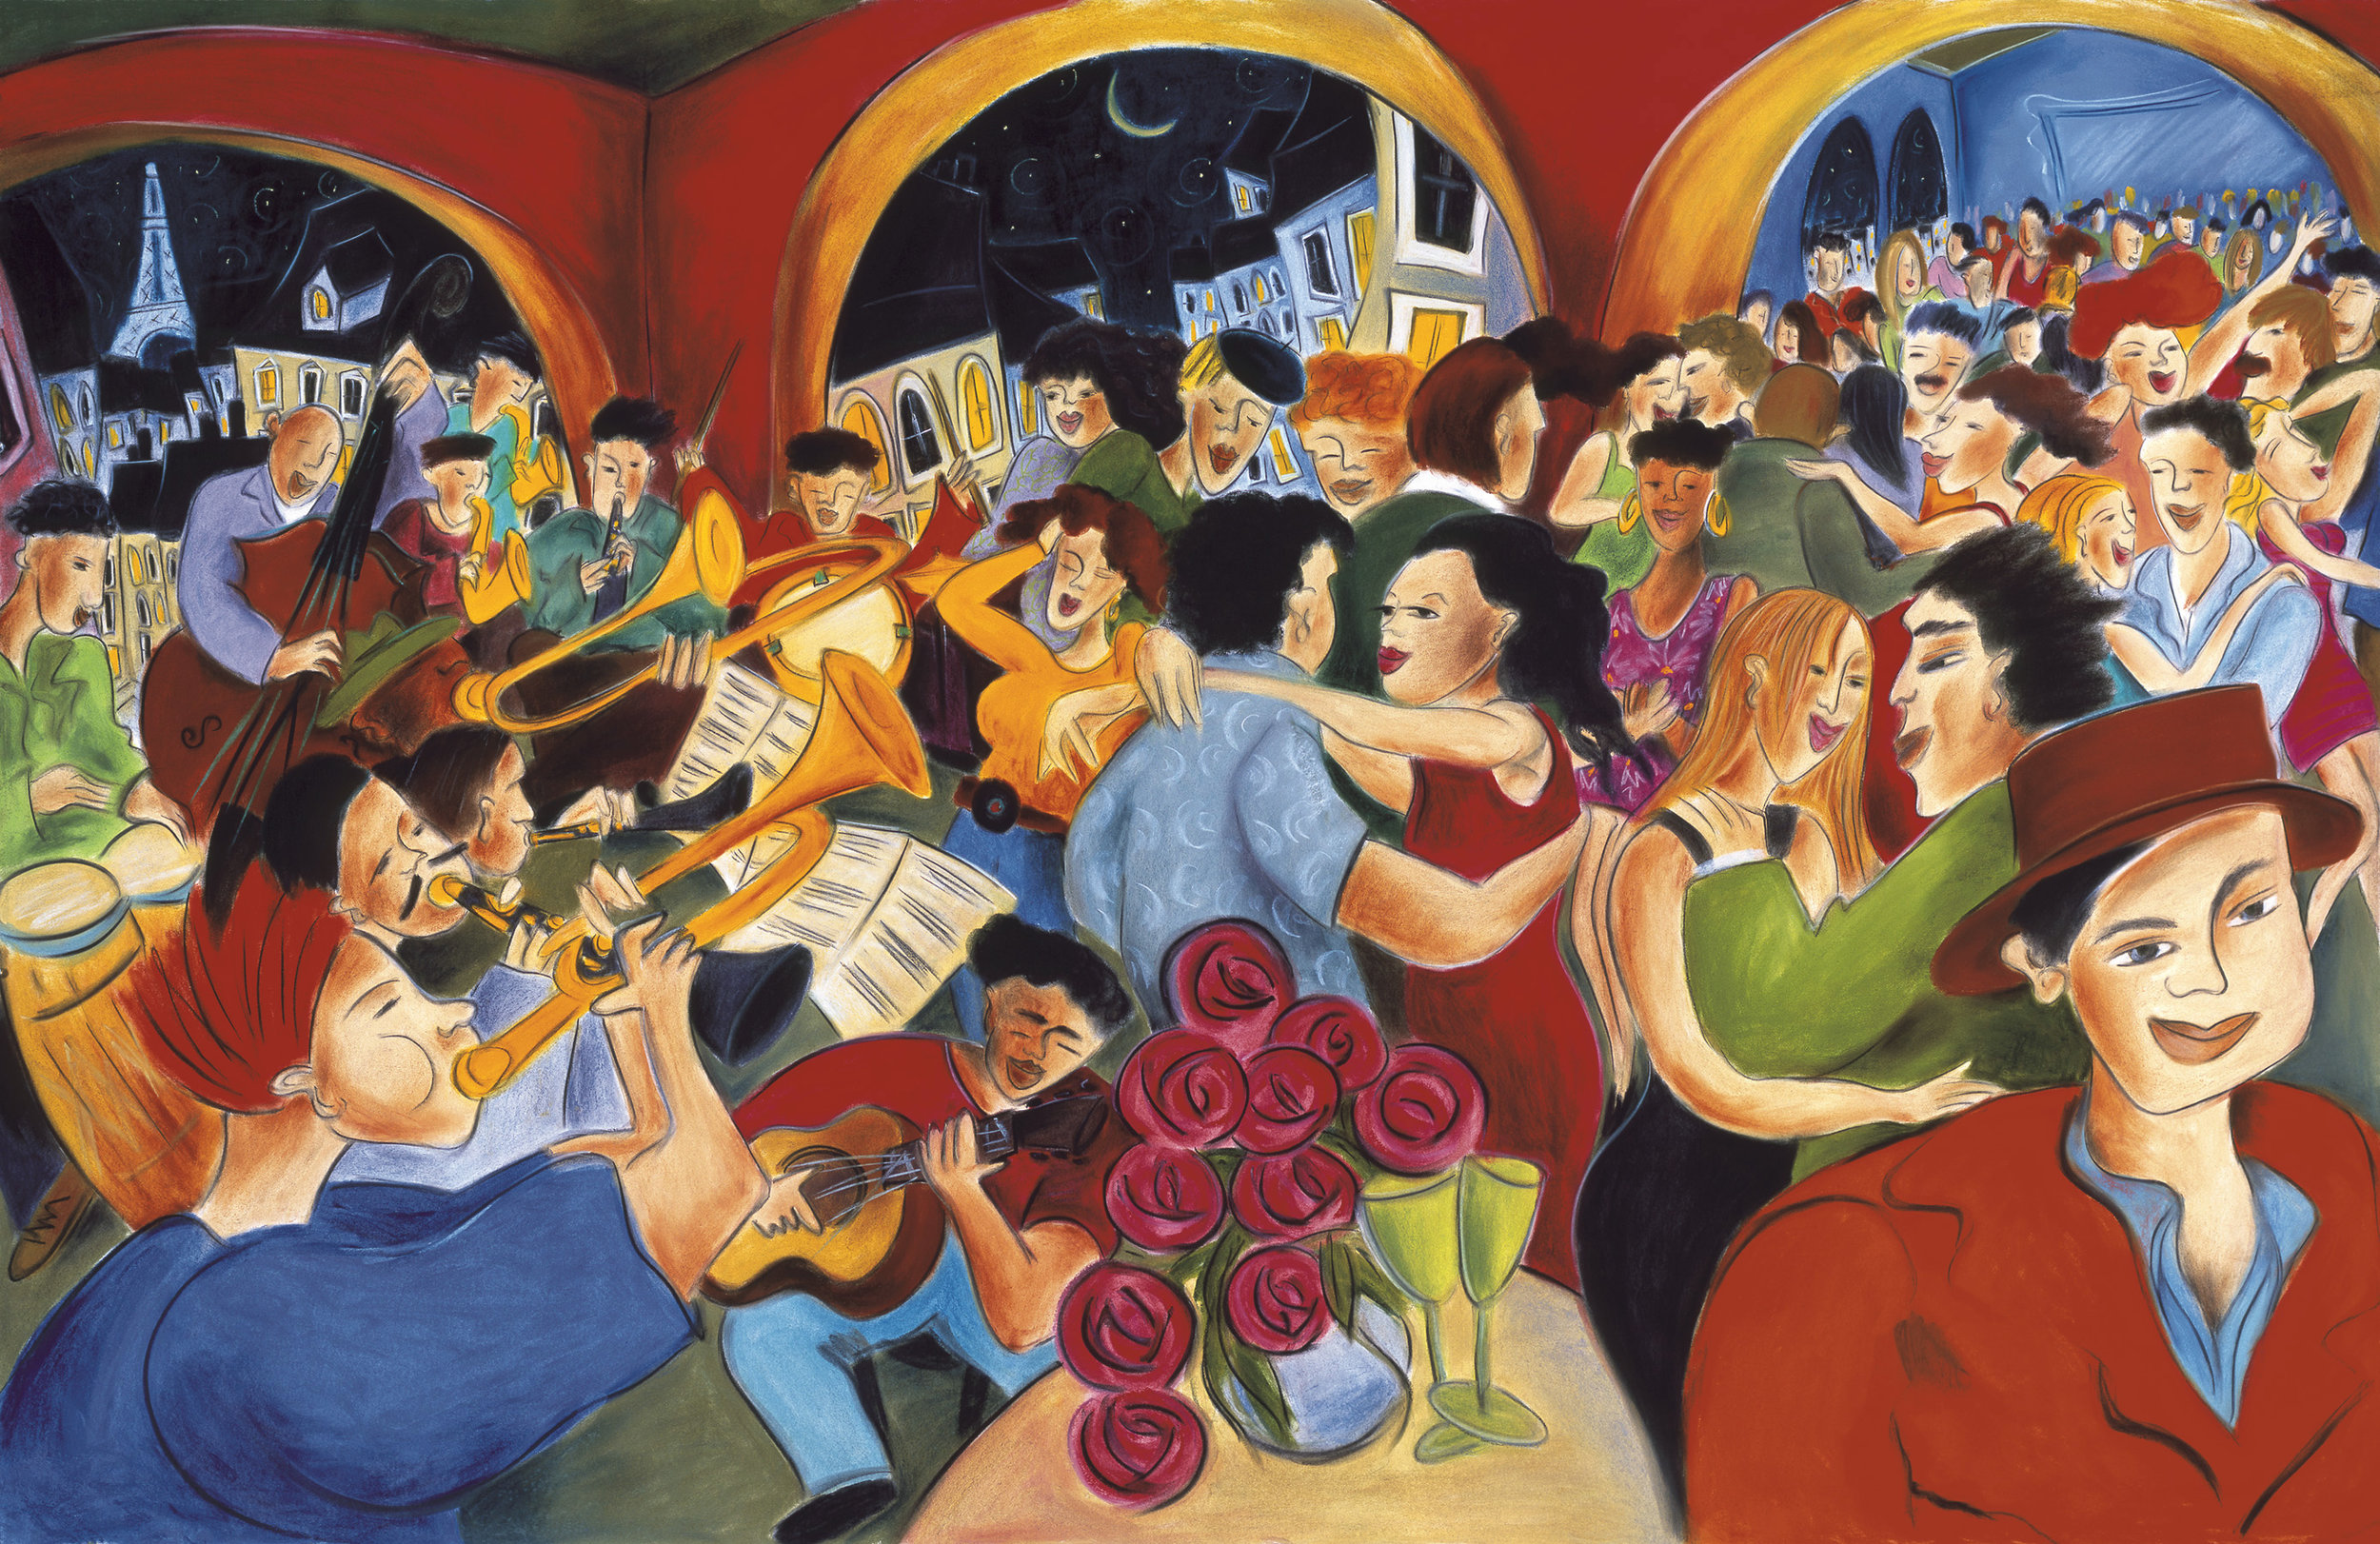 """¡Baila! limited edition prints, 22"""" x 30"""" edition of 50 signed and numbered, SOLD OUT"""